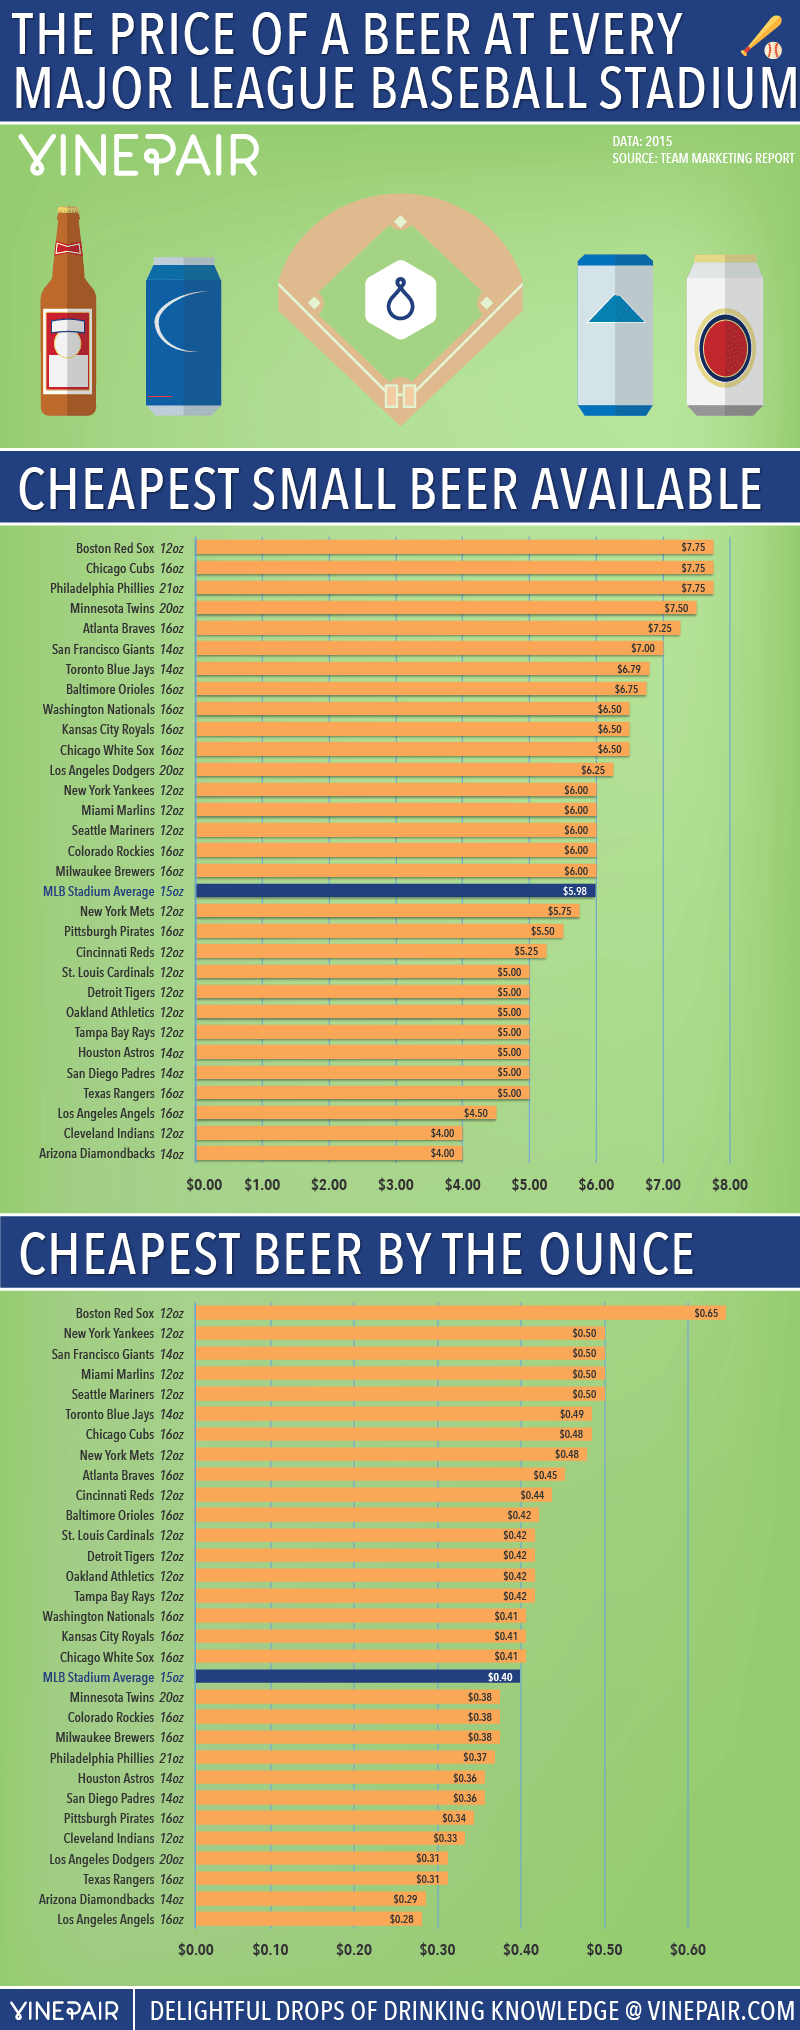 2015 Ranks: The Price Of A Beer At Every Major League Baseball Statidum